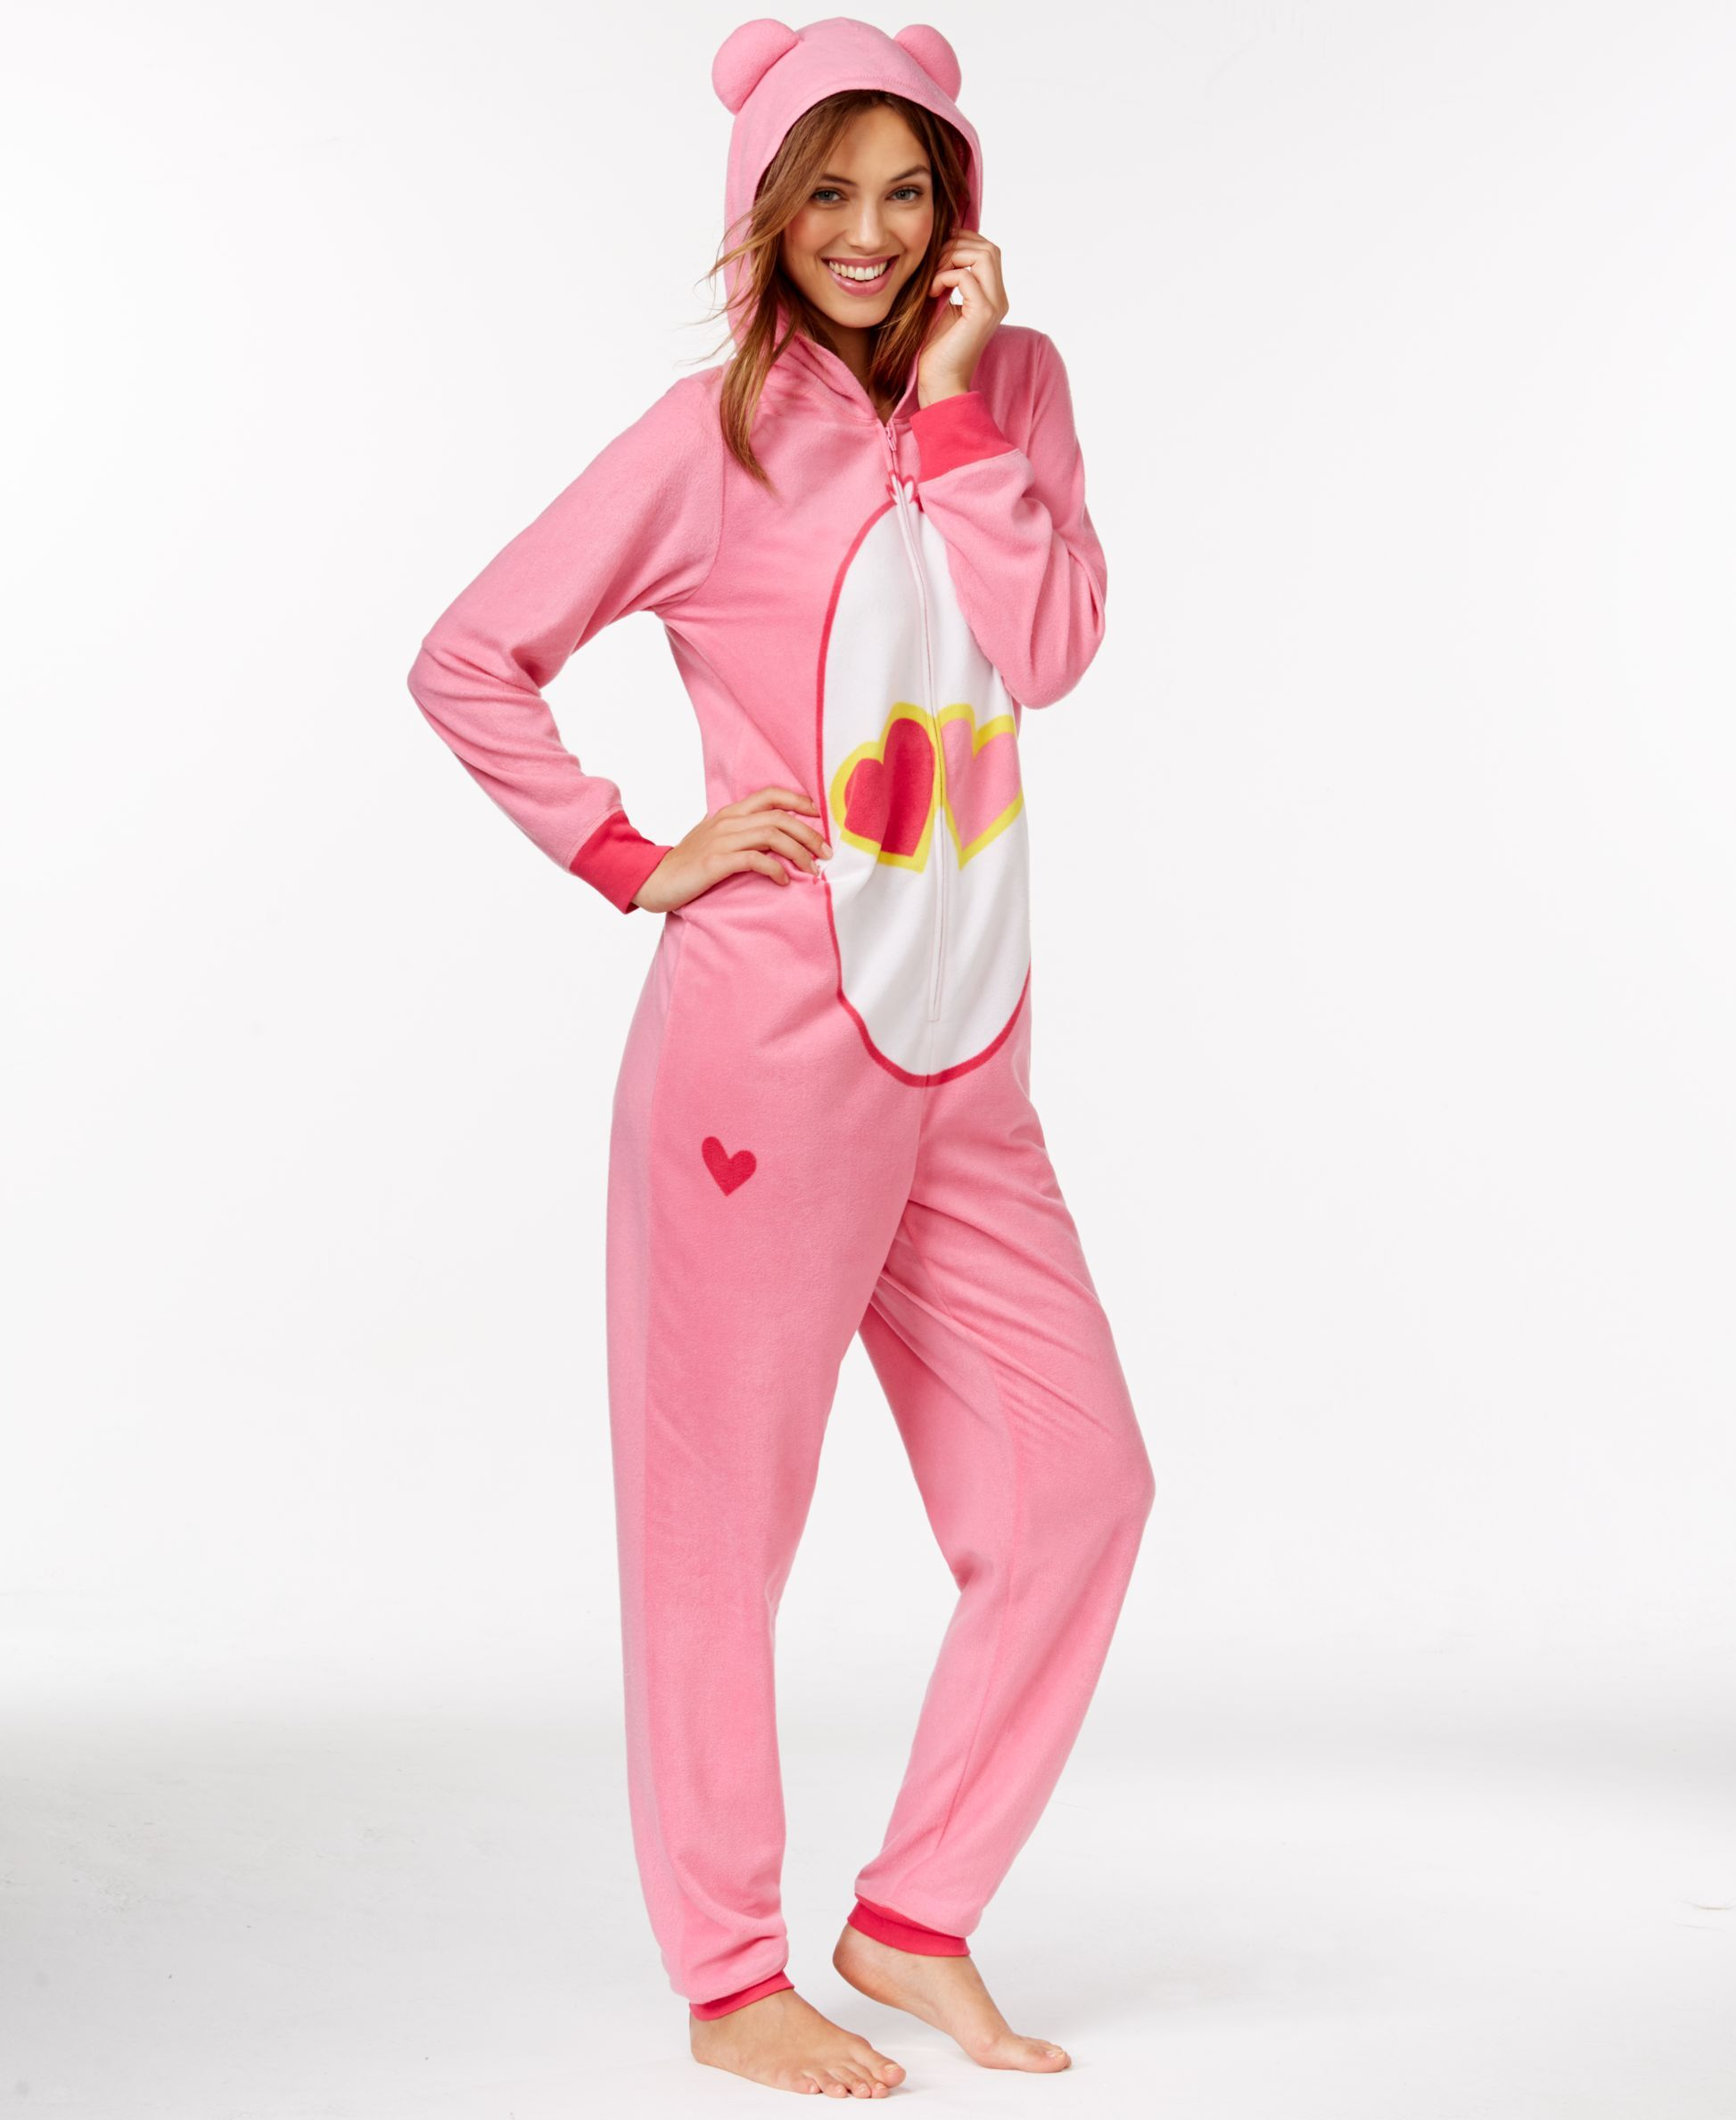 Sorry, care bear adult clothes theme